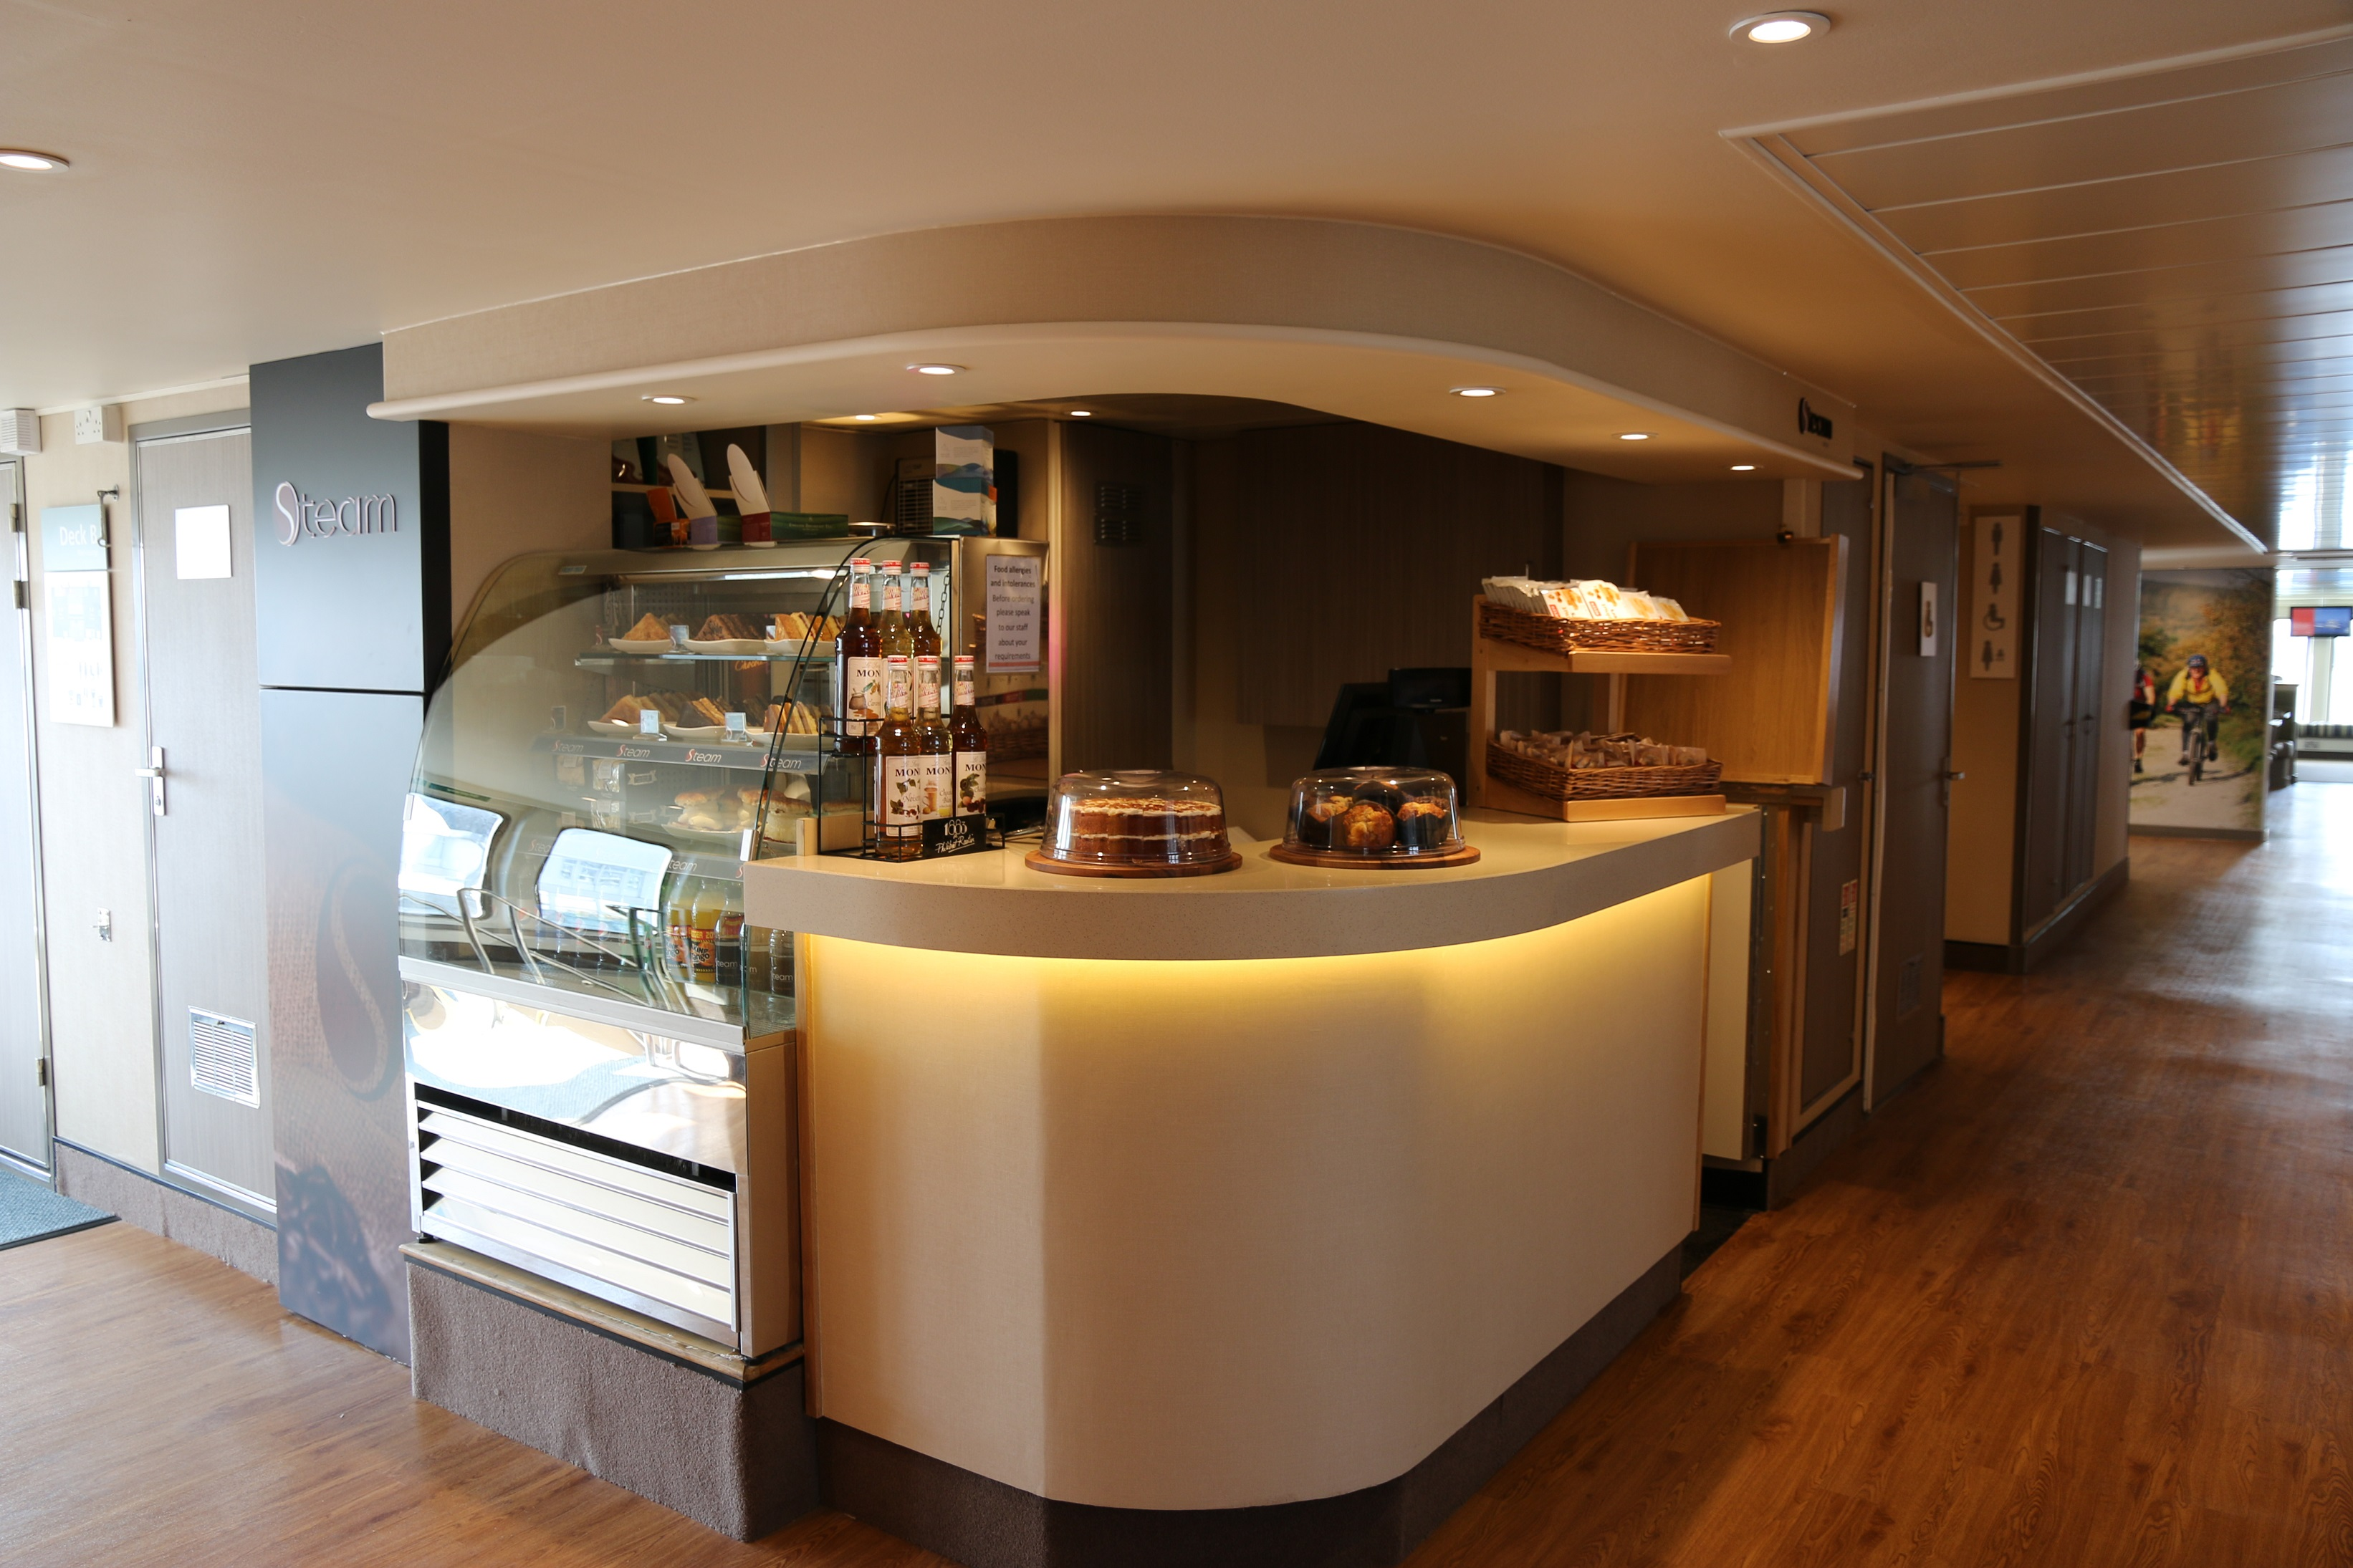 Red funnel red osprey servery small